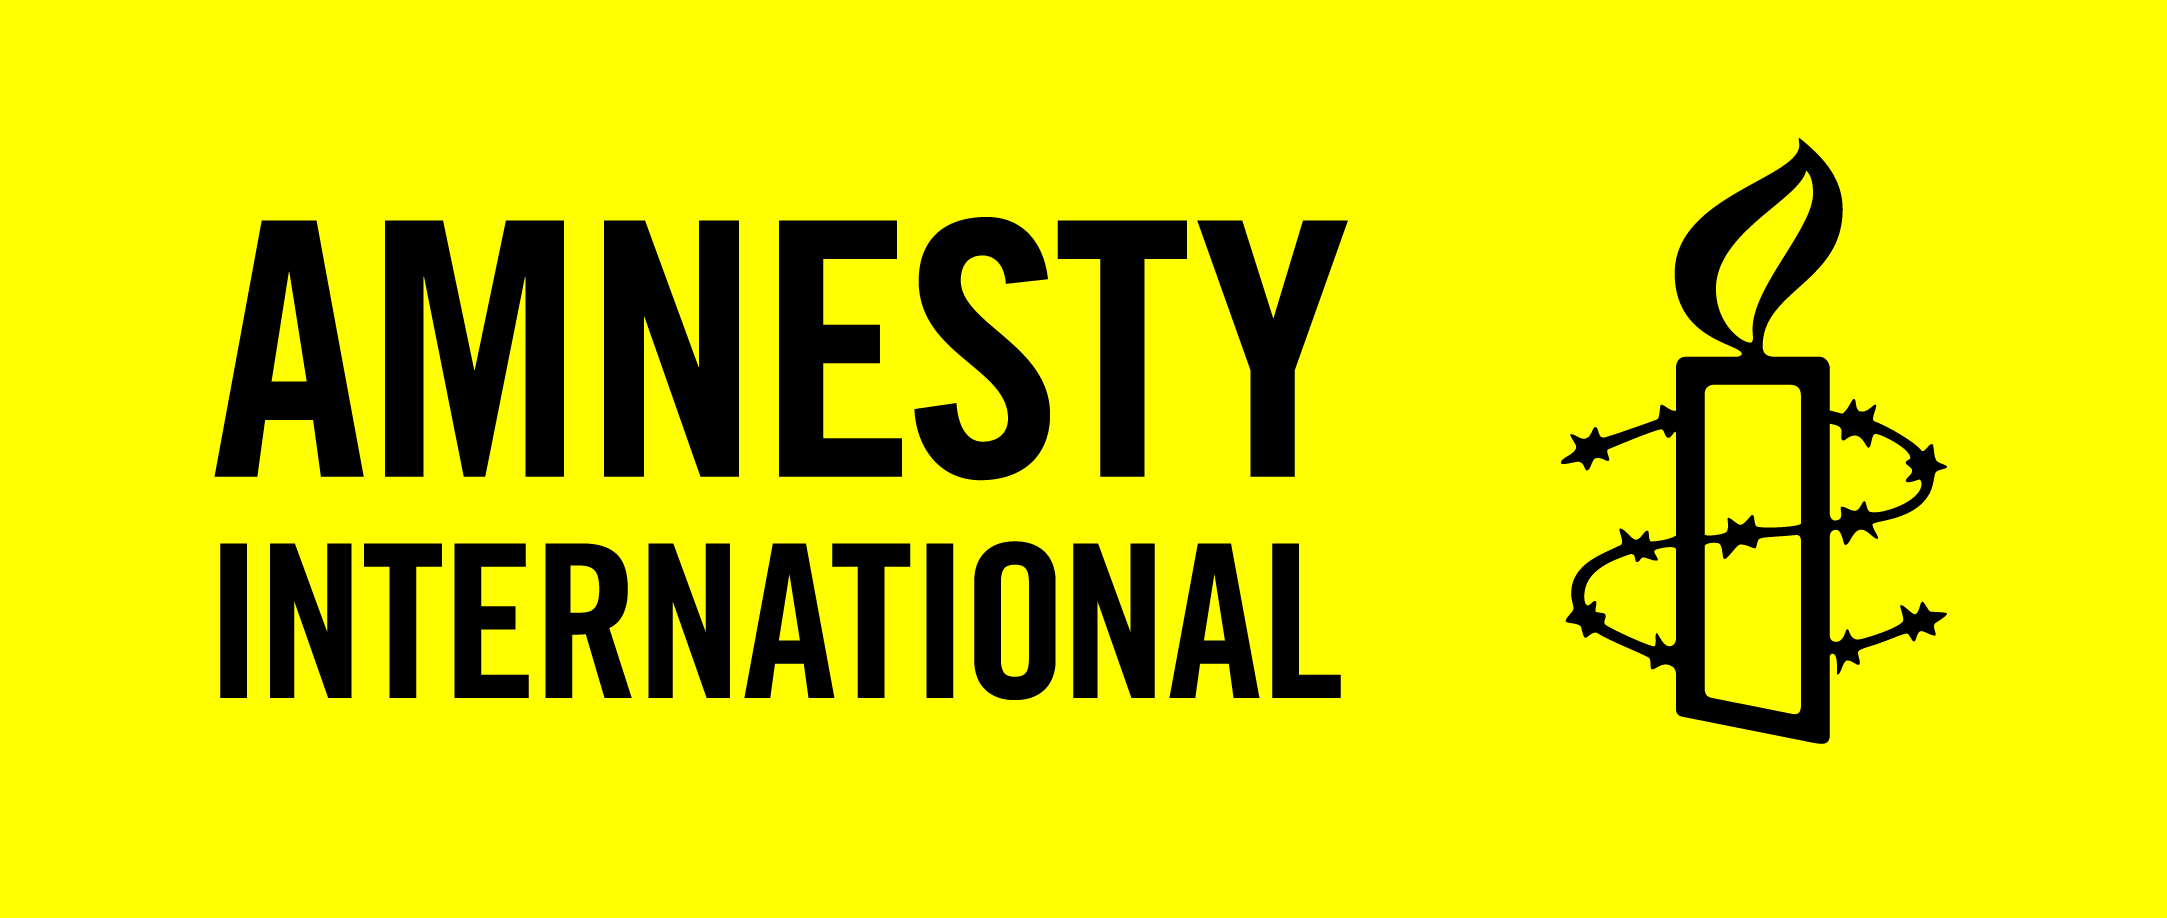 Amnesty says the report covers 149 countries and